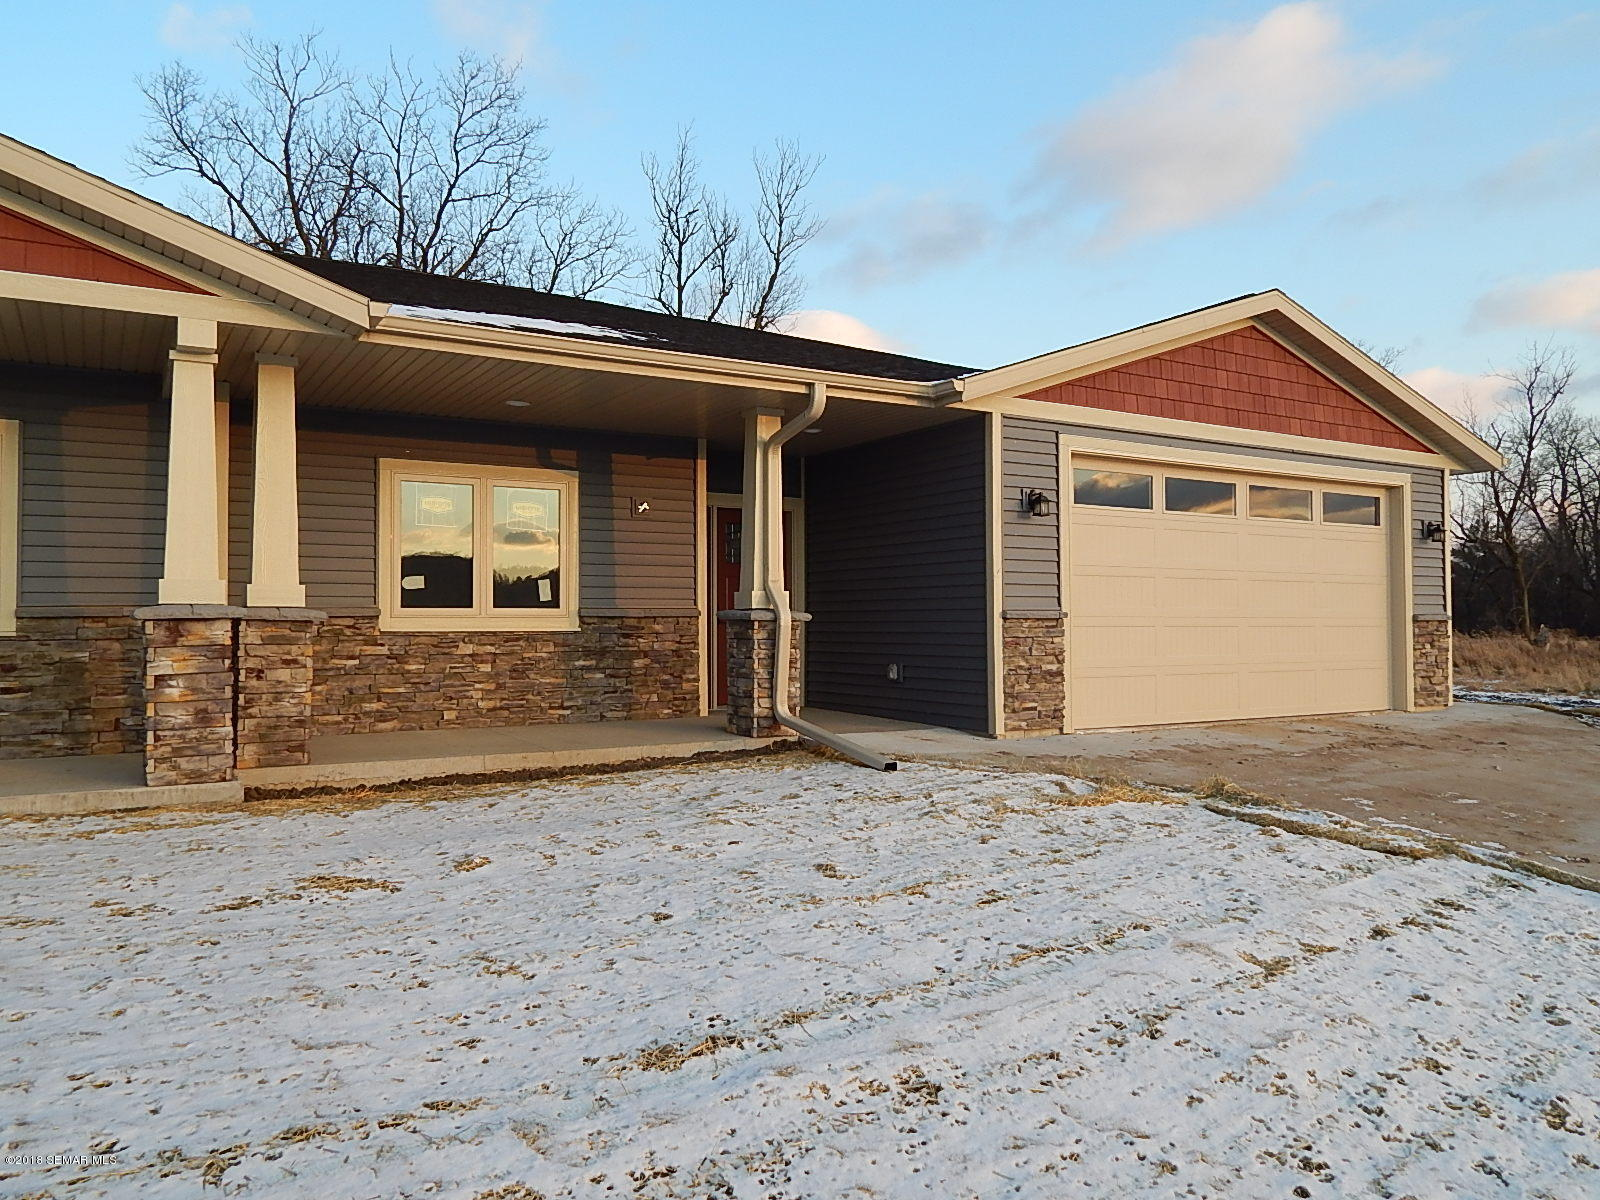 1202 Briella,Rushford,Minnesota 55971,2 Bedrooms Bedrooms,2 BathroomsBathrooms,Twin home,Briella,4088688